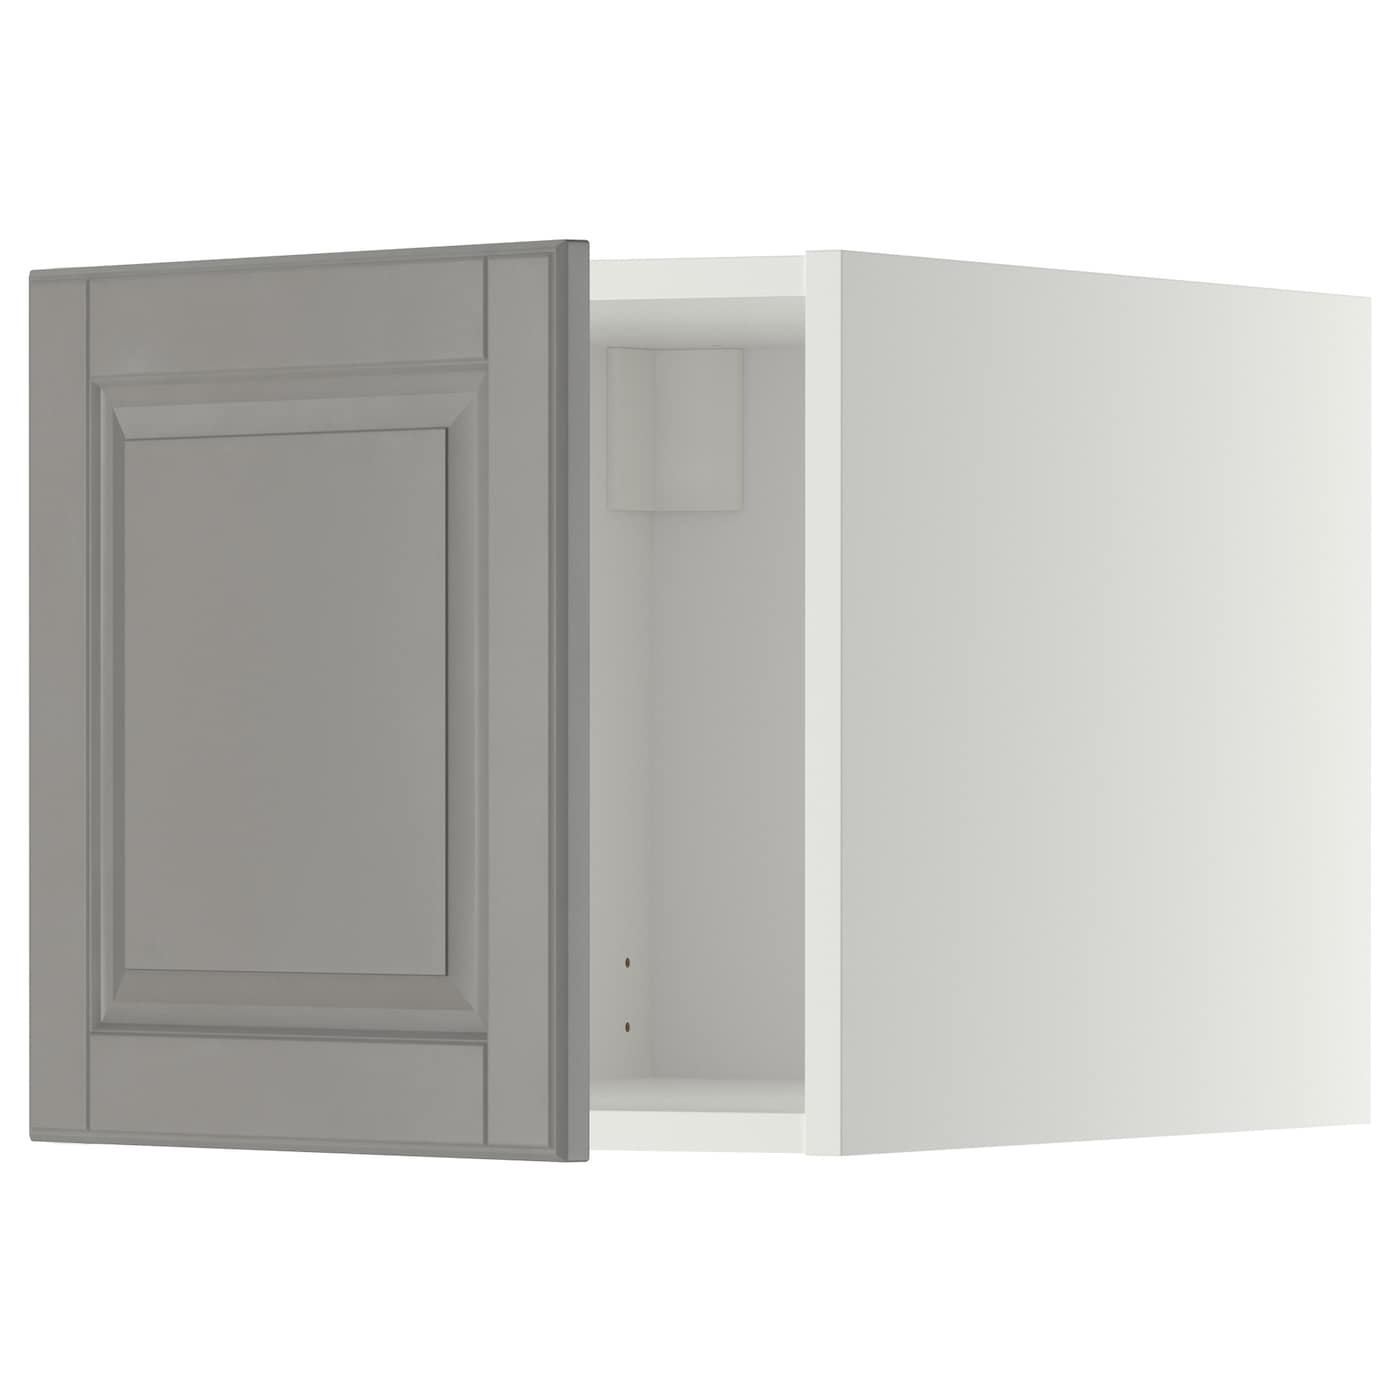 Ikea Kitchen Bodbyn Grey: METOD Top Cabinet White/bodbyn Grey 40 X 40 Cm